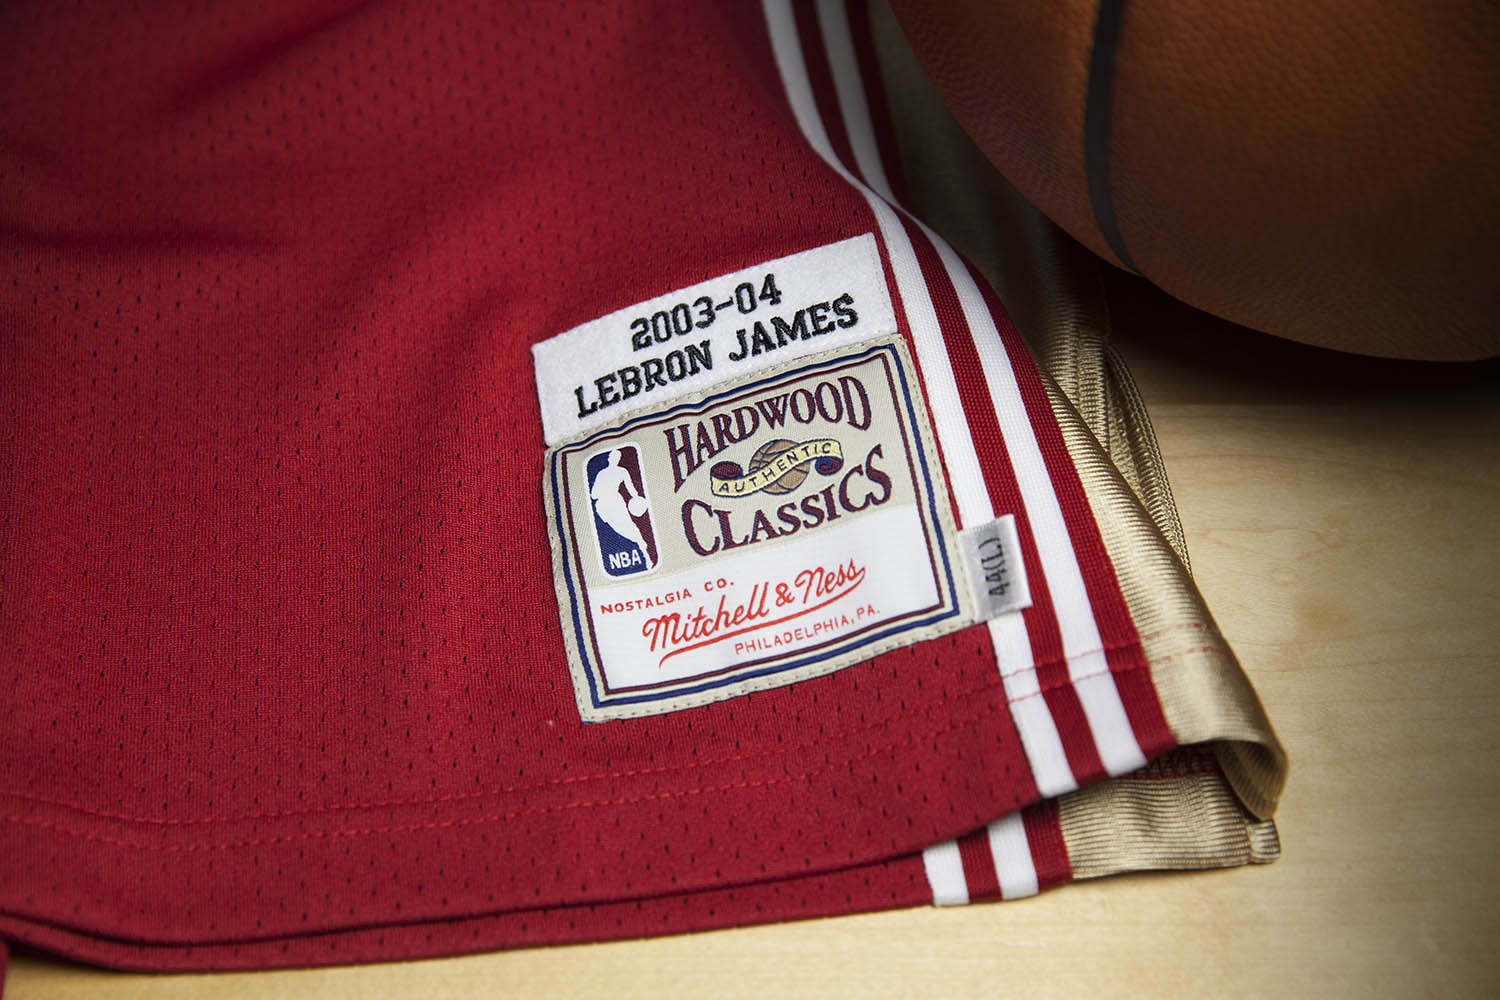 new product eb0c8 1f4a8 Mitchell & Ness LeBron James Rookie Jersey   Sole Collector